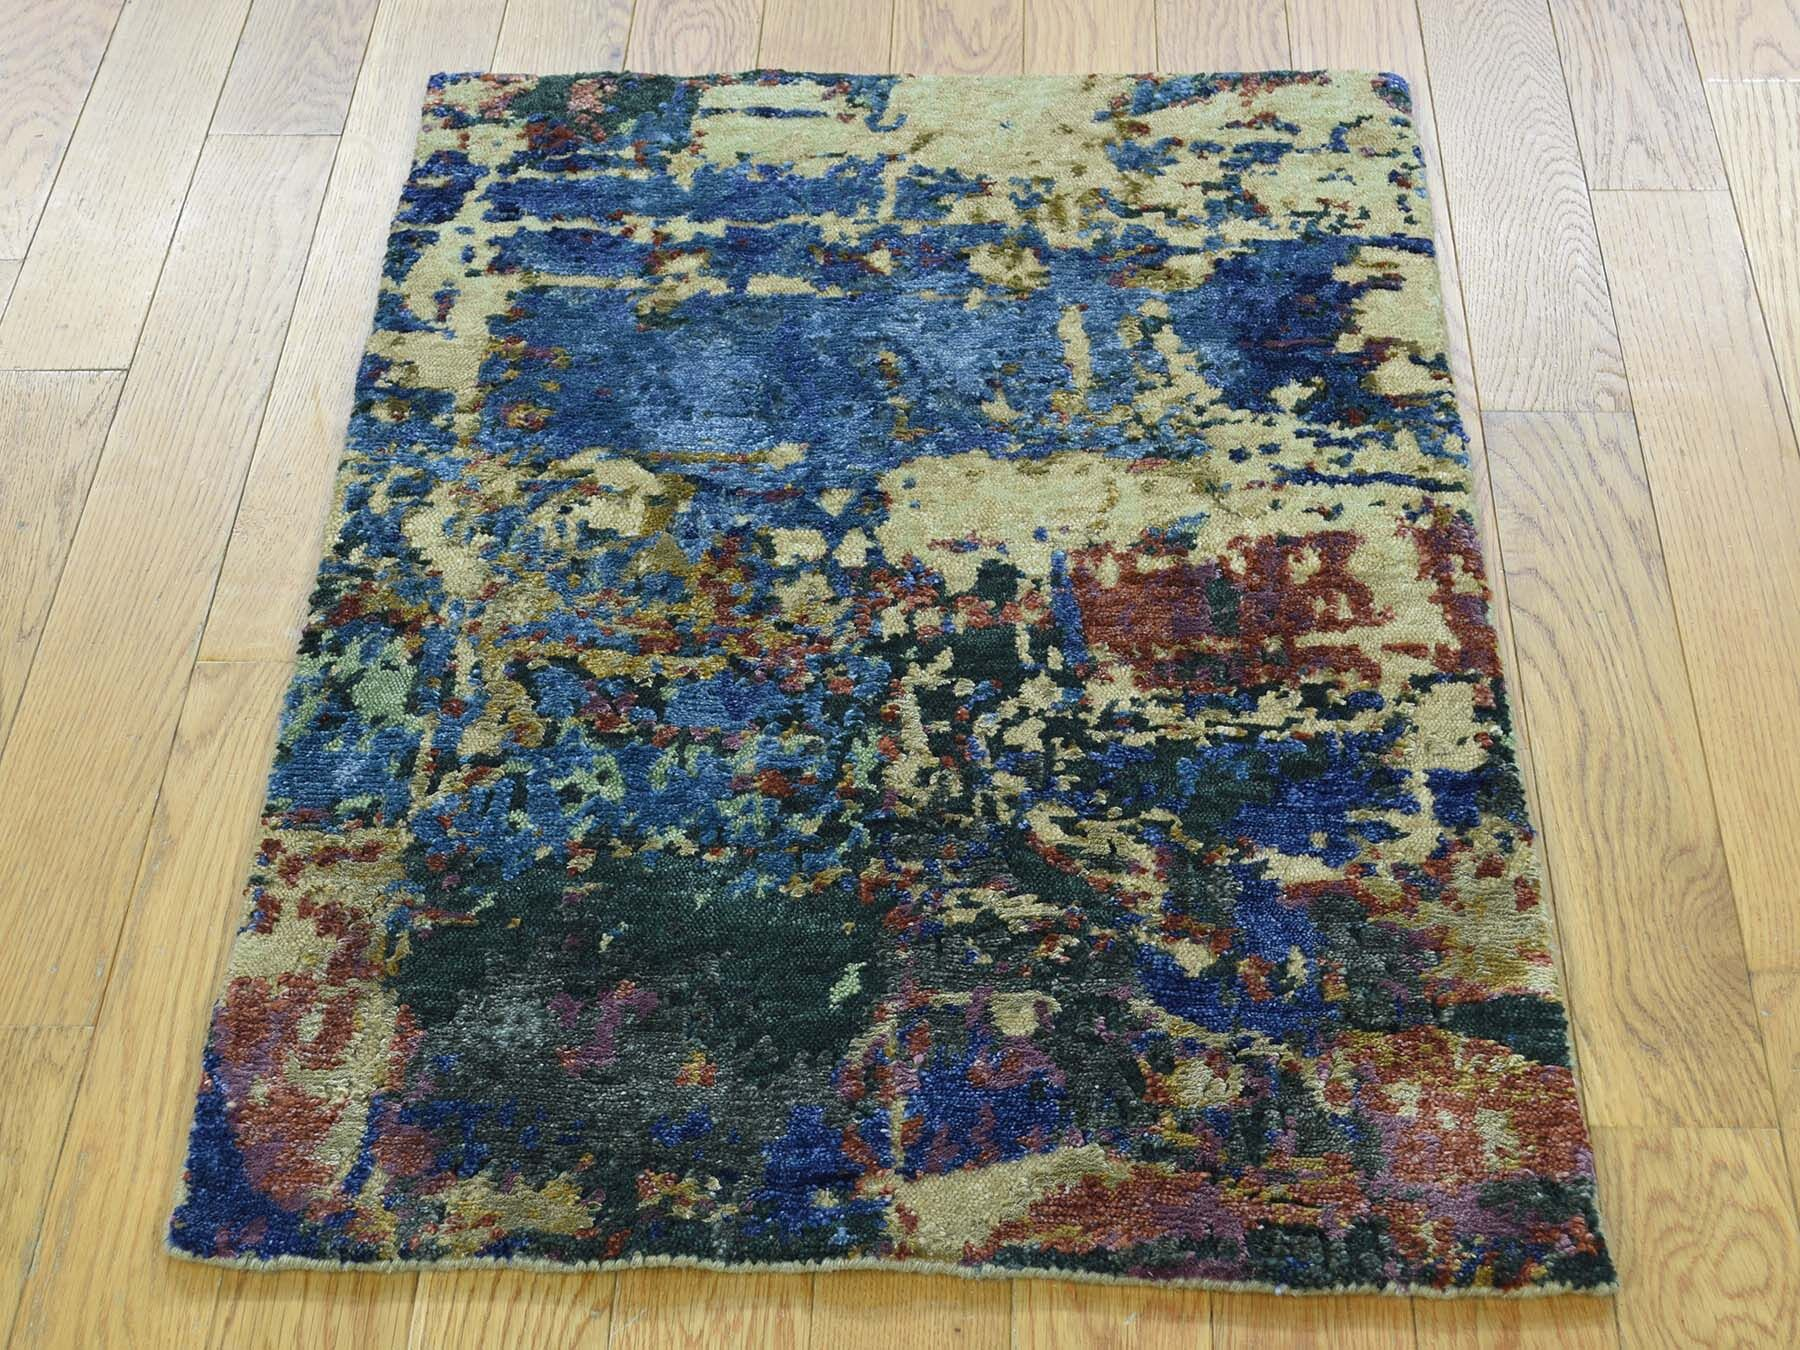 One-of-a-Kind Bowersville Abstract Design Handwoven Wool/Silk Area Rug